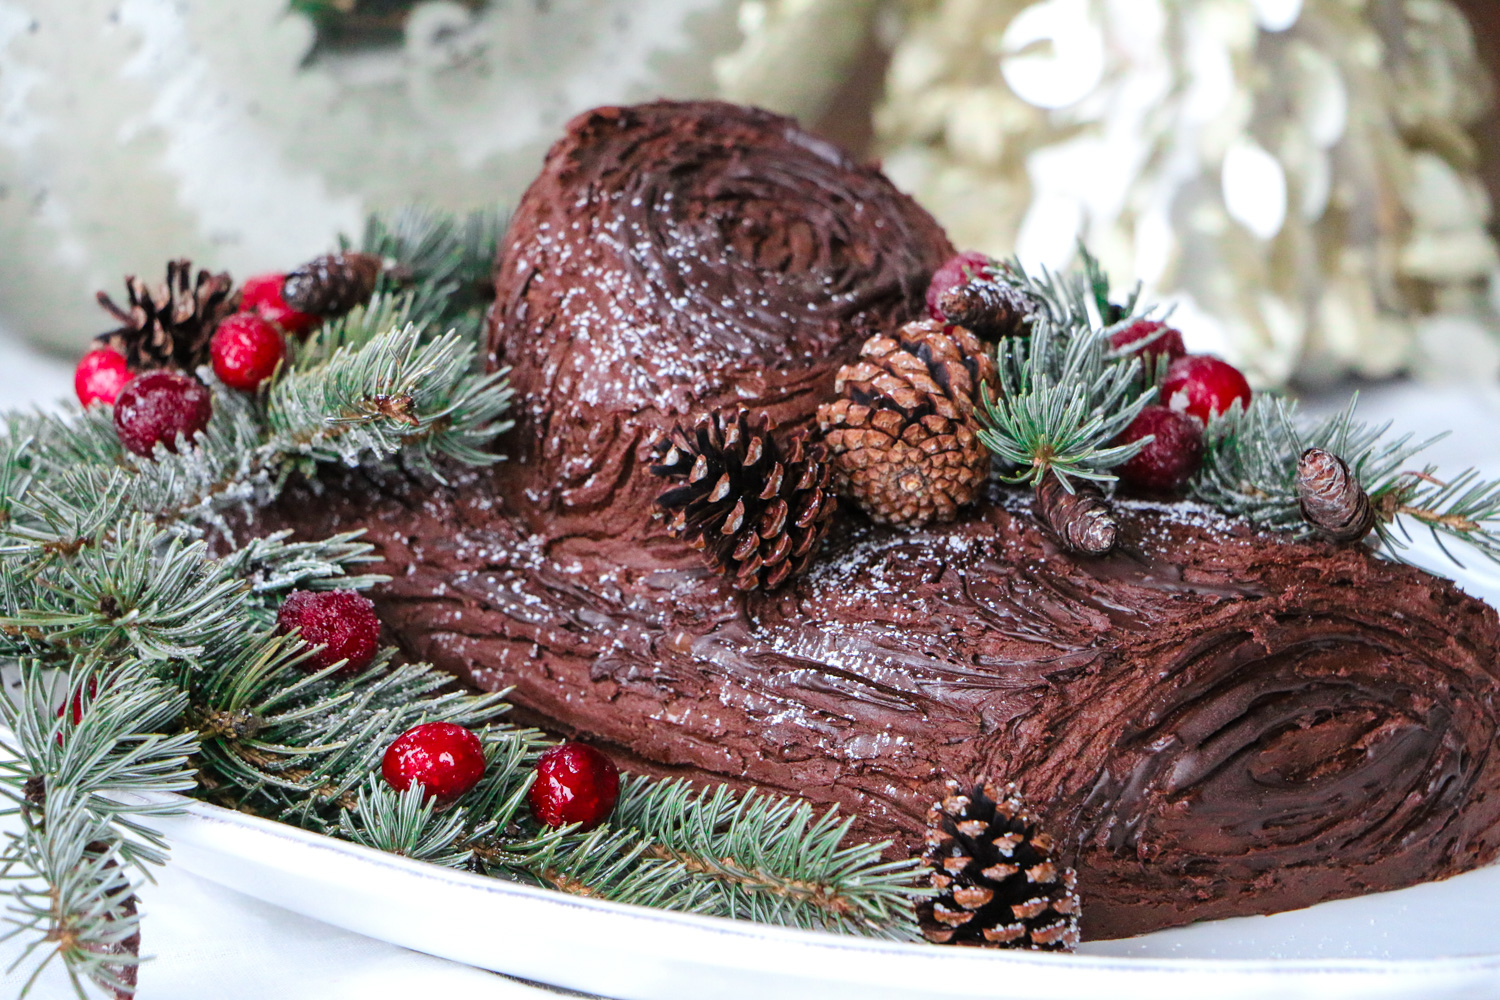 Baileys yule log b che de no l emi cooks - Buche de noel decorations ...